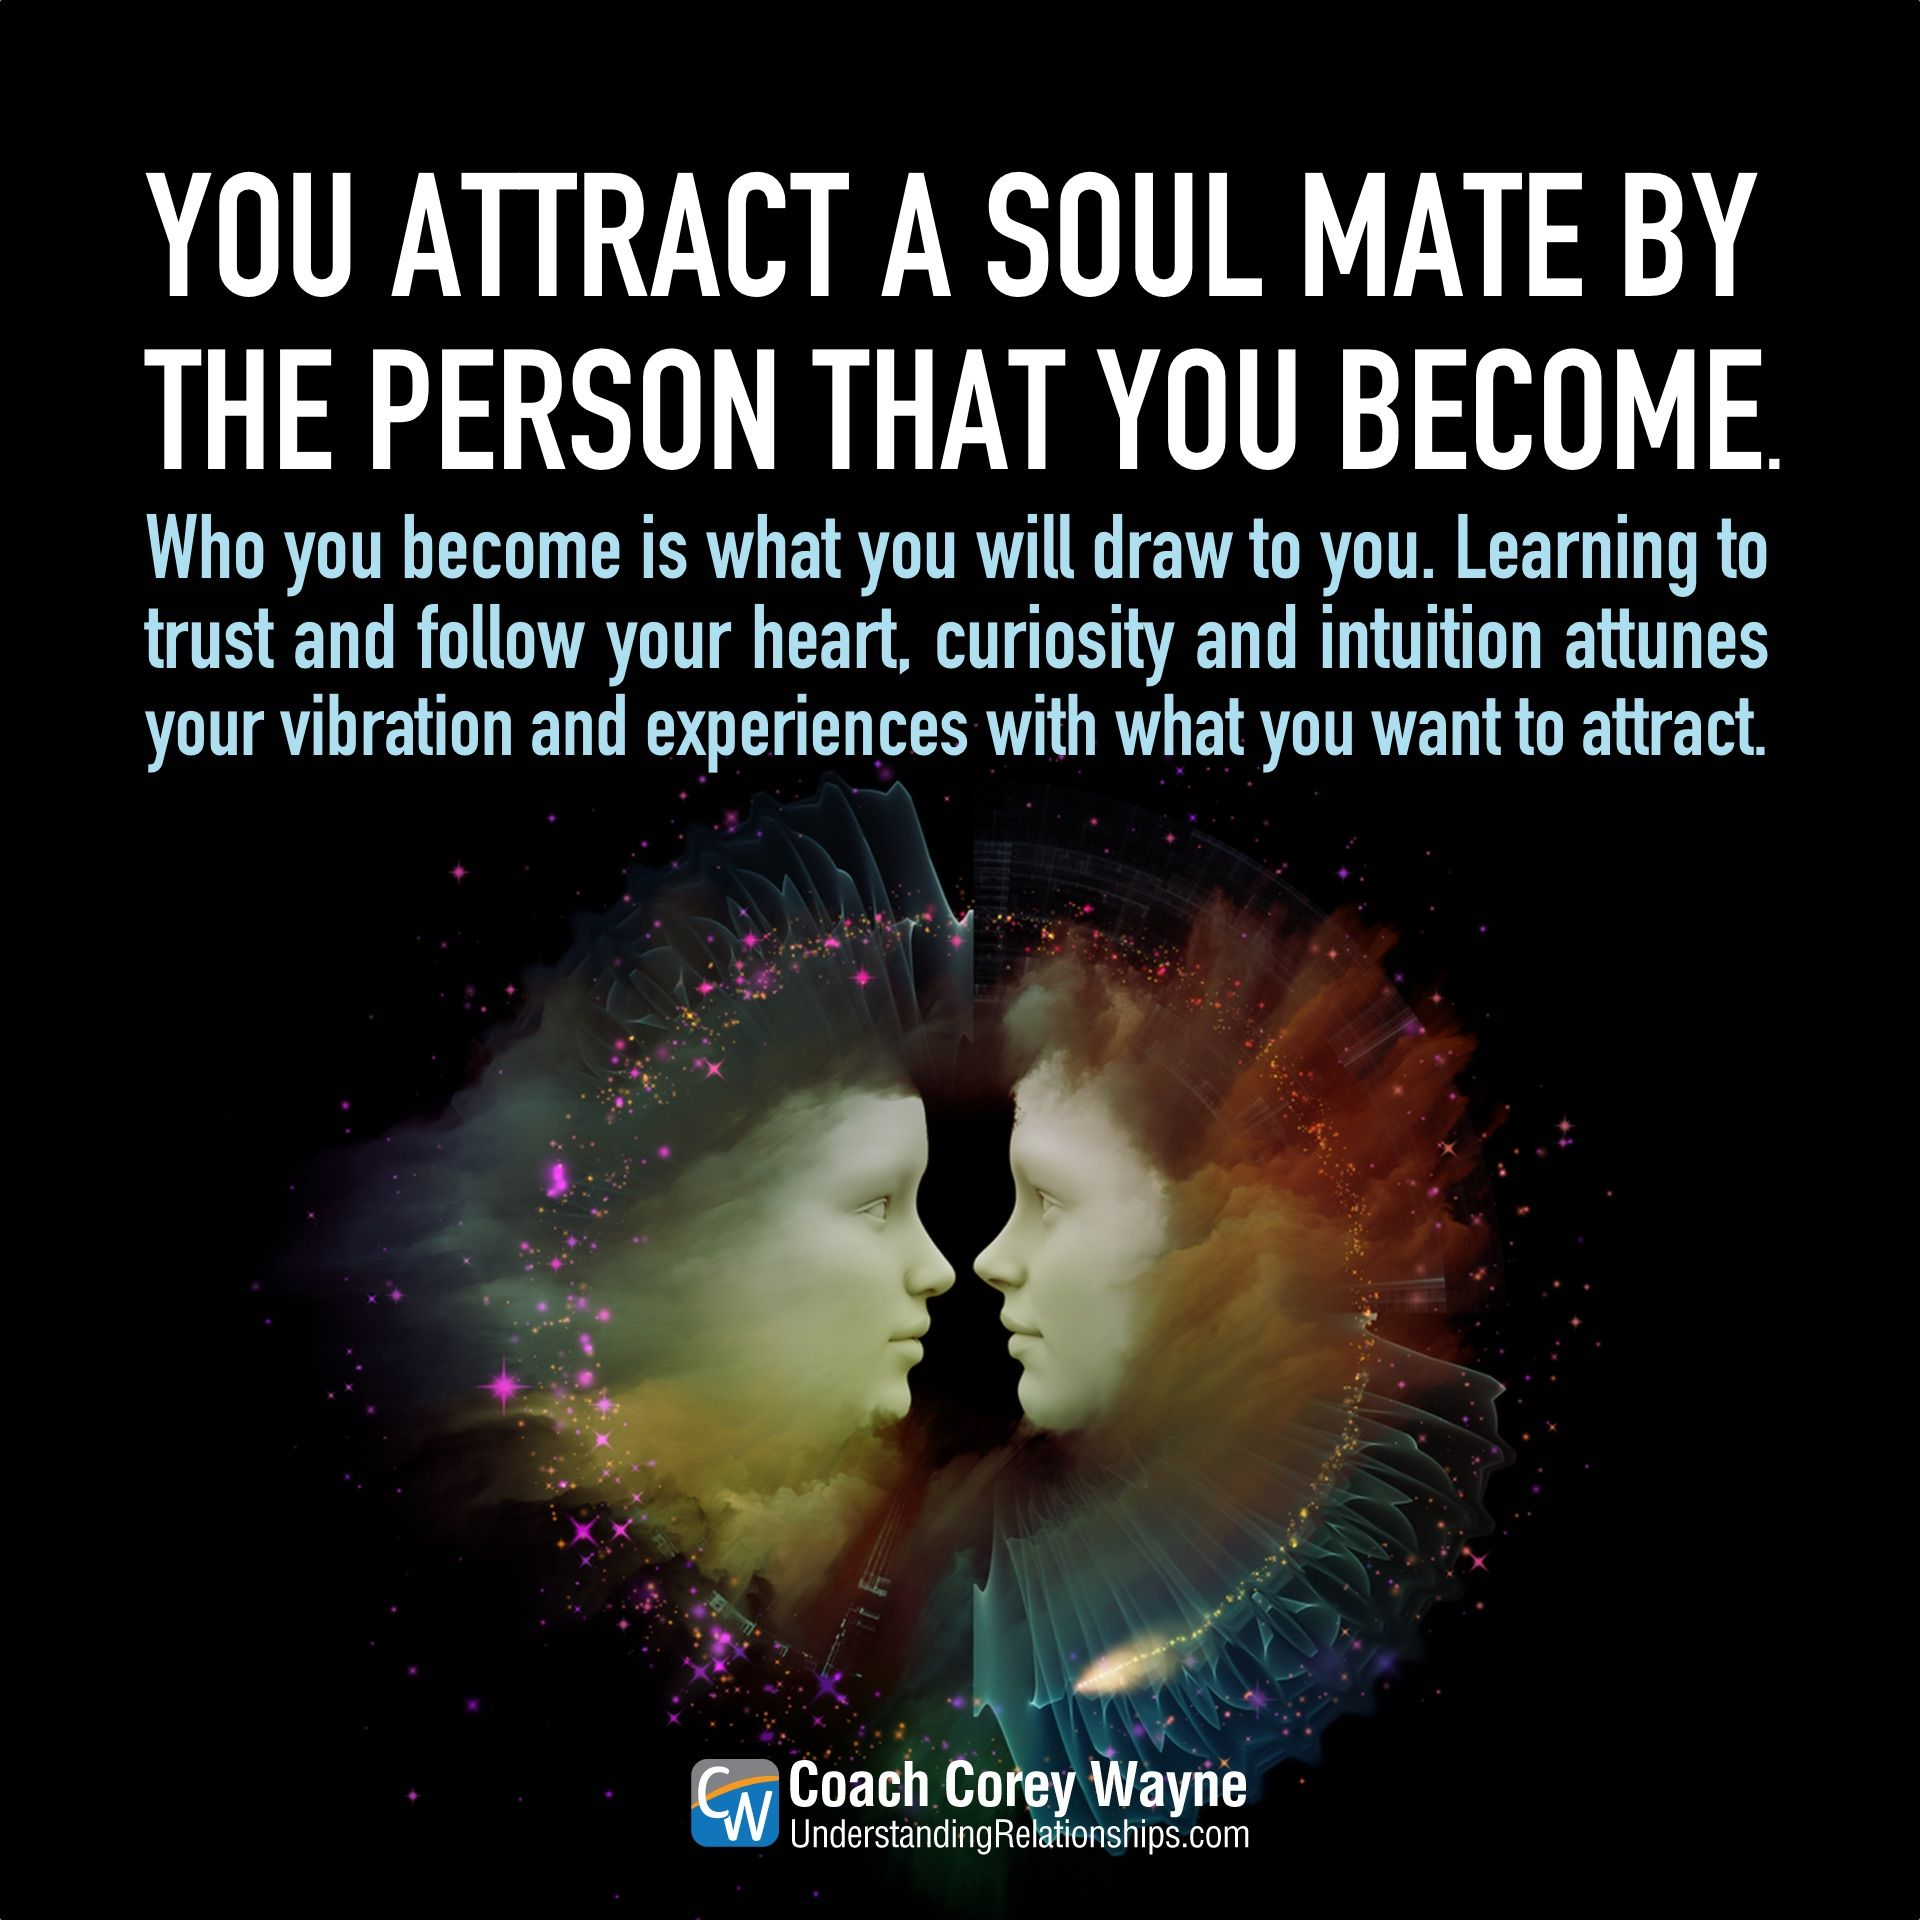 Soulmates Destiny Intuition Vibration Relationships Women Dating Attraction Love Seduction Dreams Goals Marria Soulmate Relationship People Quotes